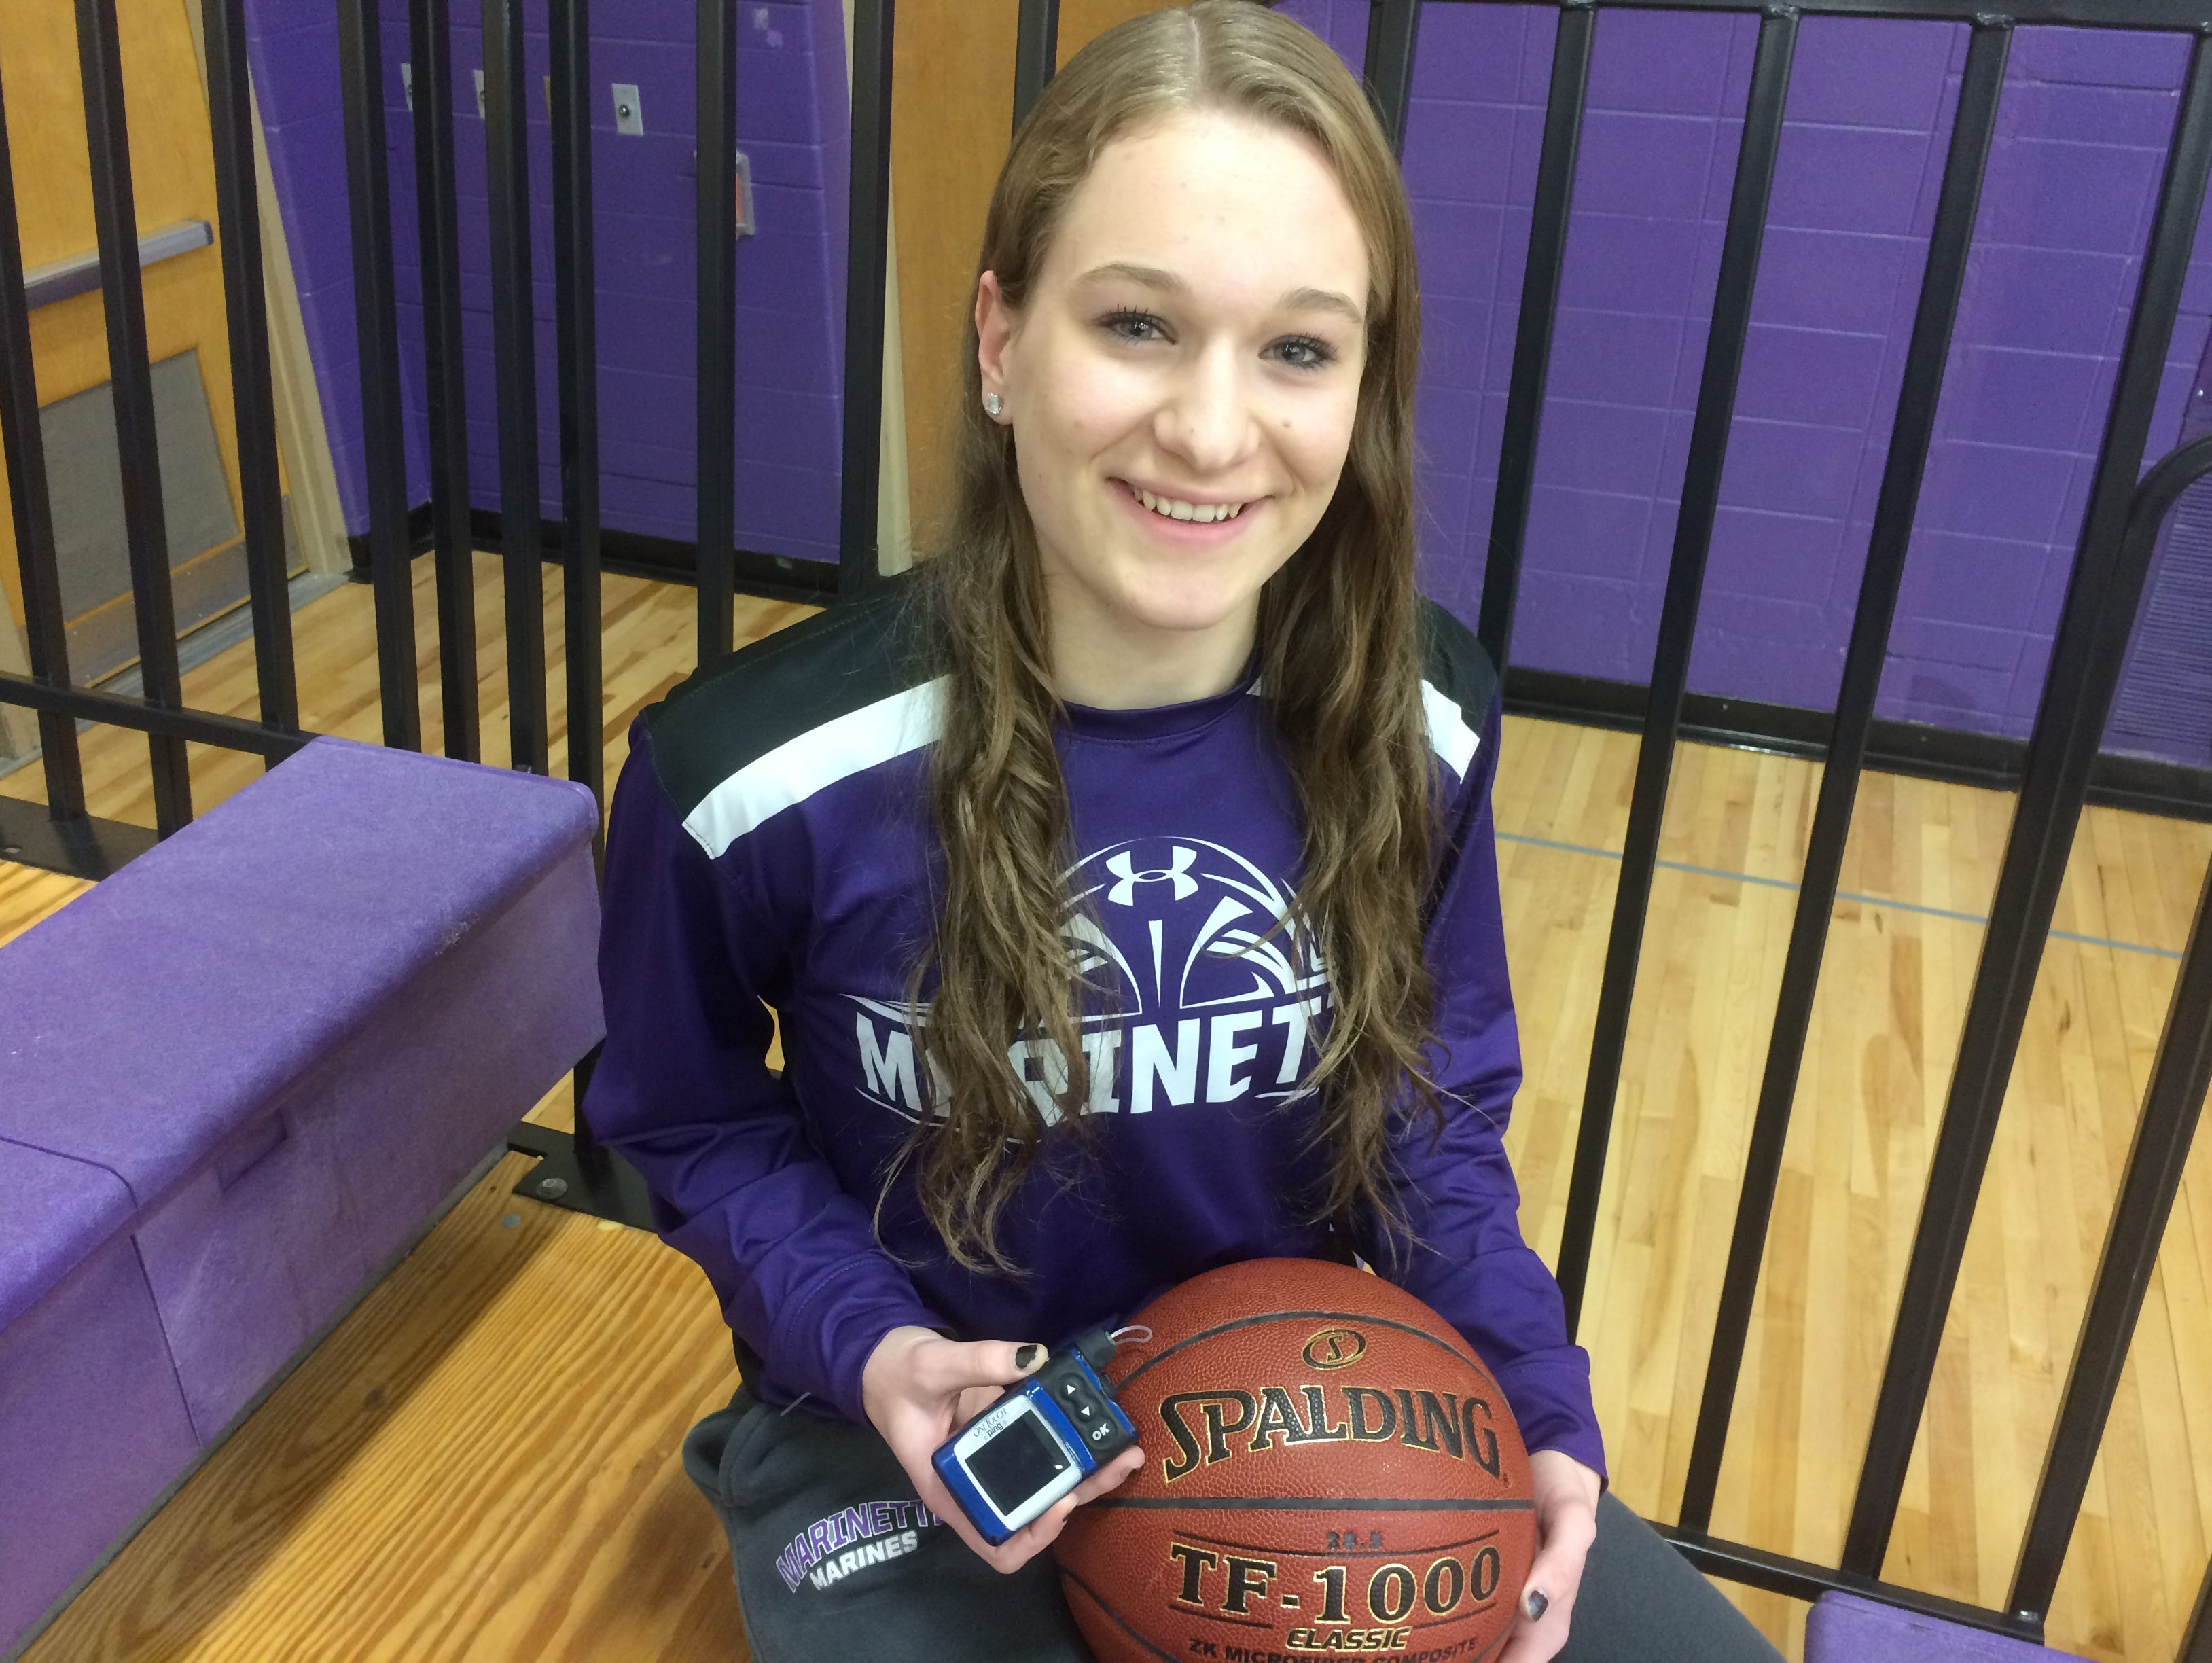 Marinette senior Jordan Miller has Type 1 diabetes and has been using an insulin pump she was 8. She has a 3.9 GPA and competes in volleyball, basketball and softball.